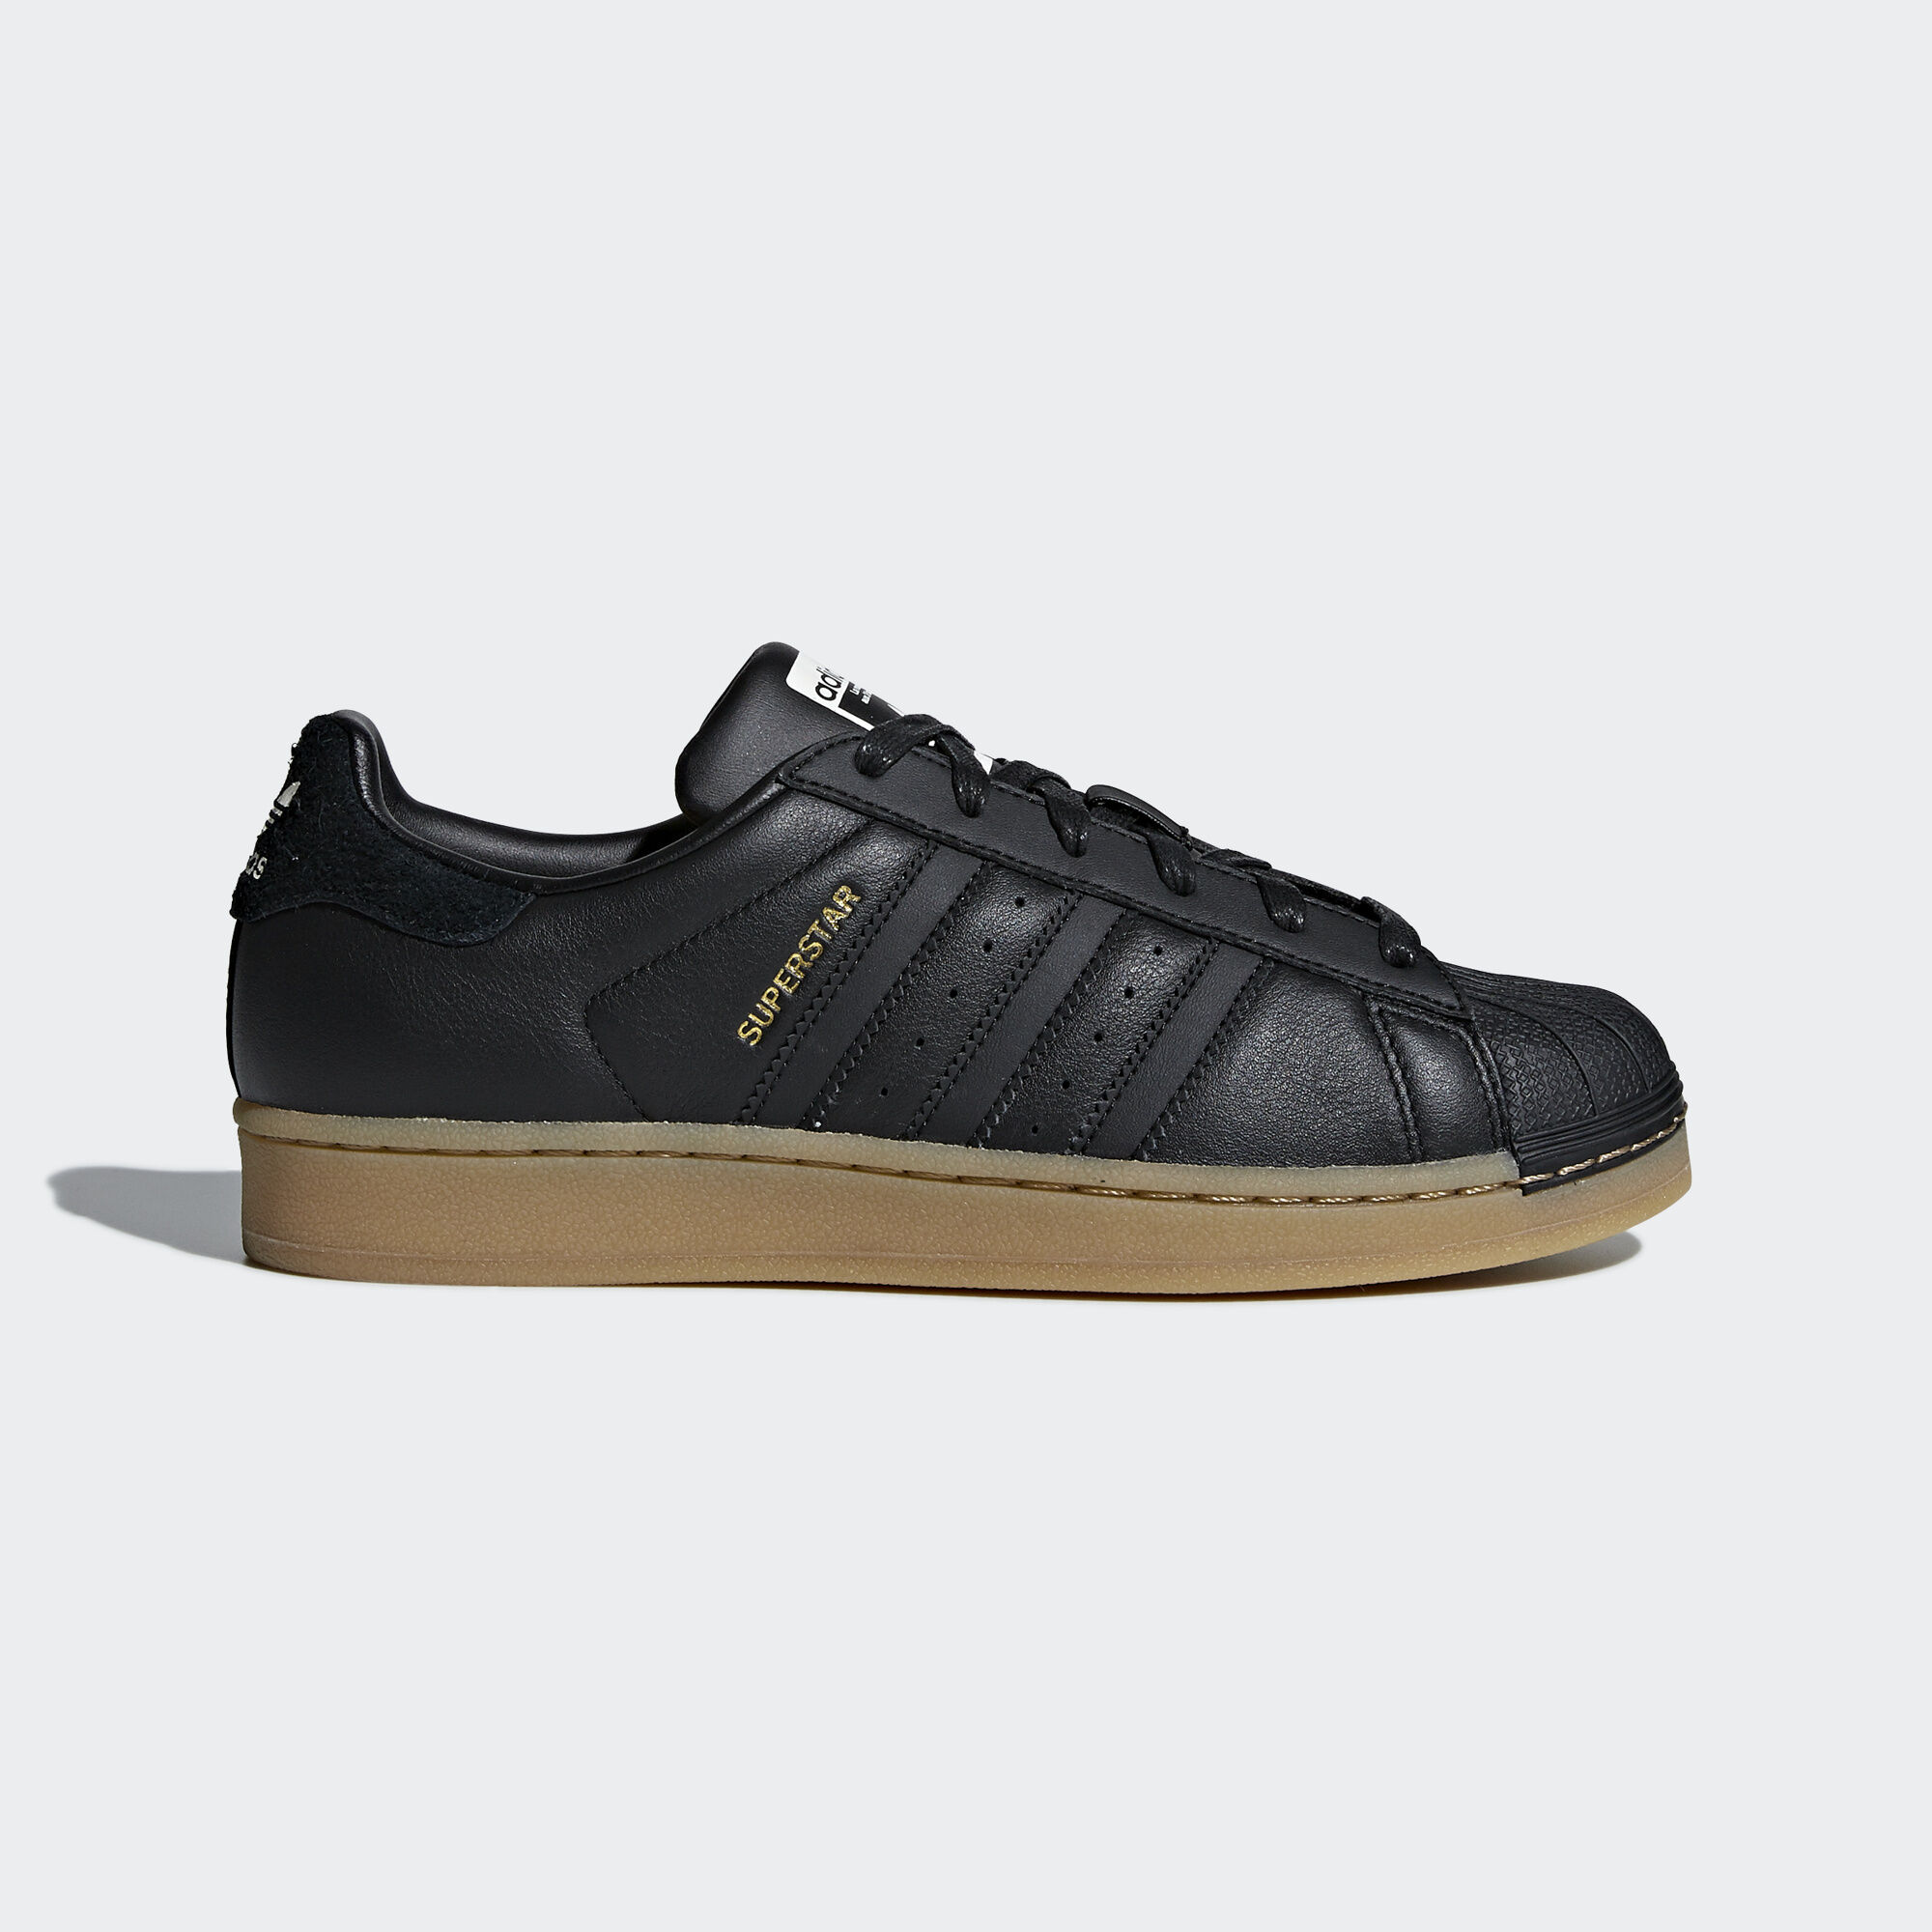 adidas sst shoes